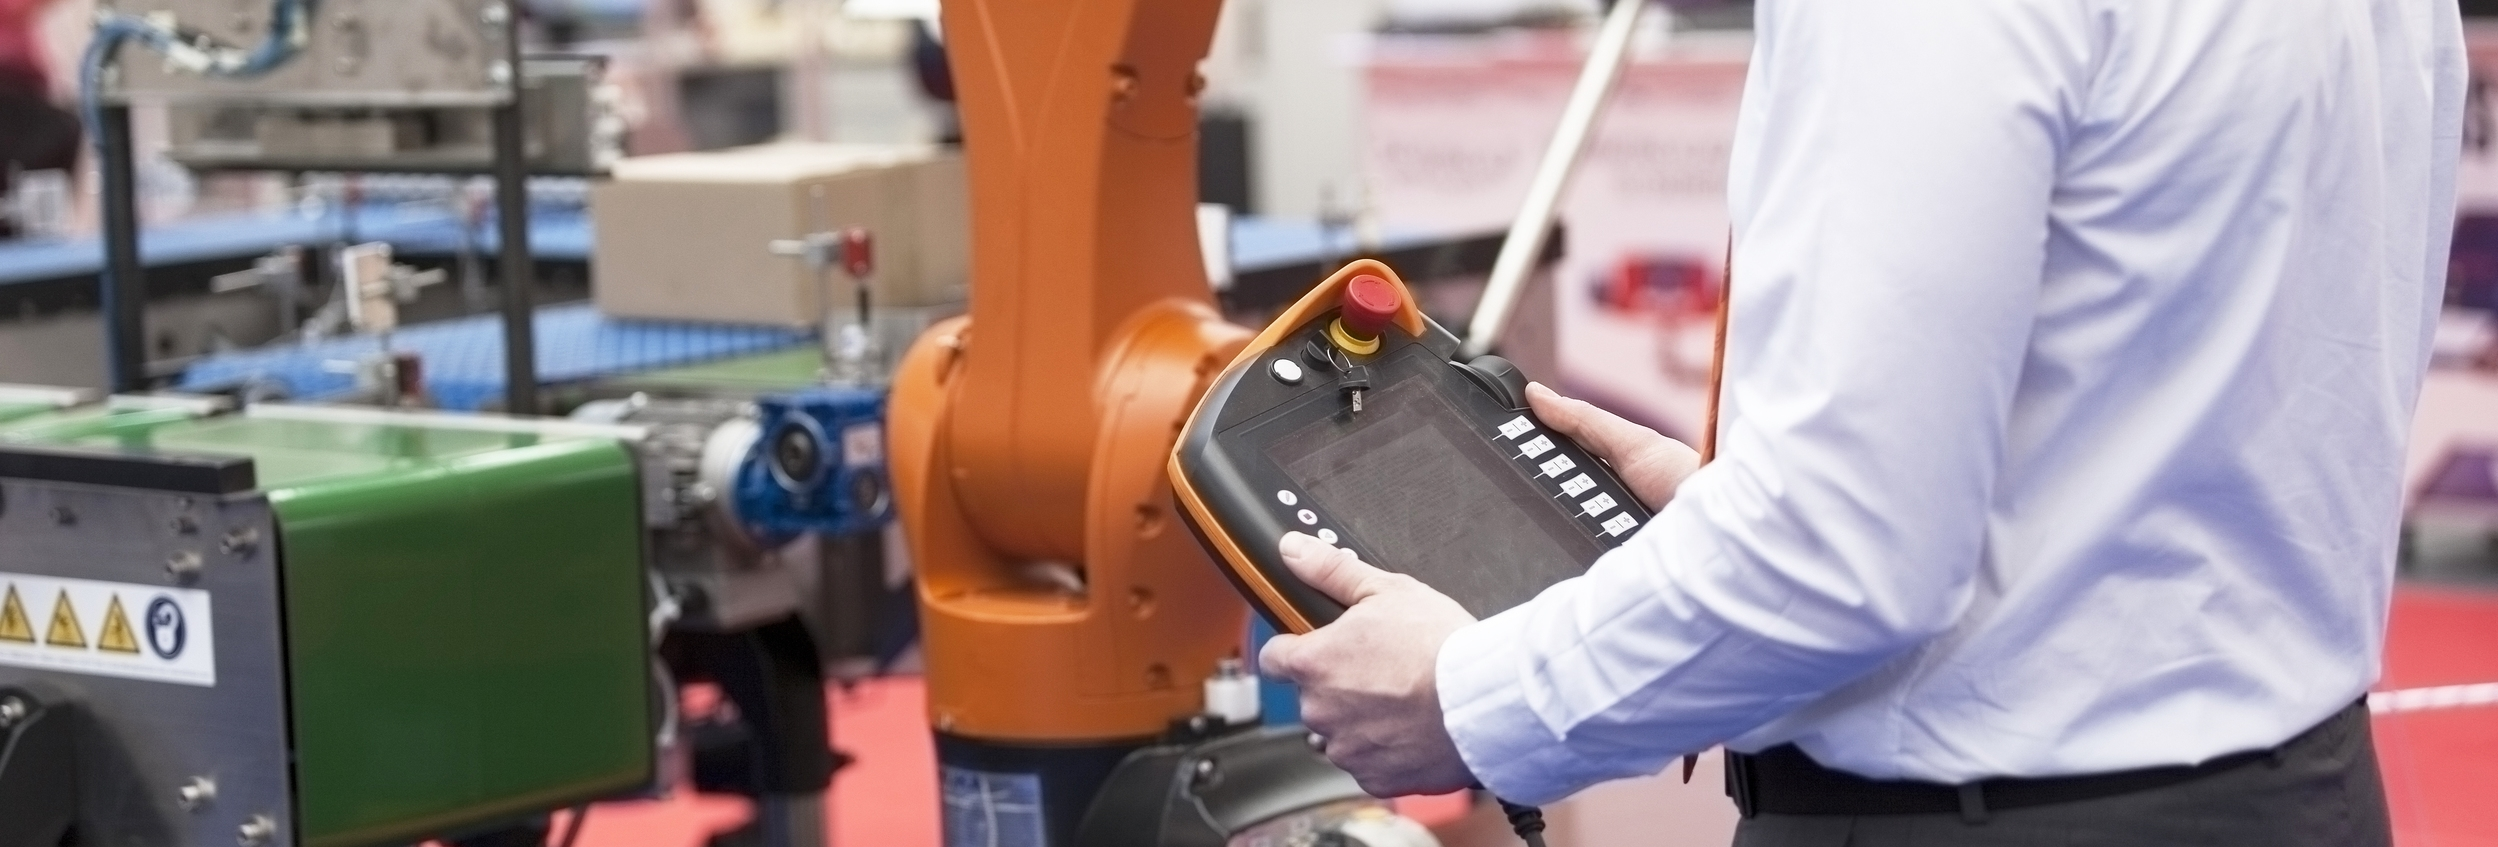 tronix Engineering, Our Approach, About, man with tablet in factory, work together, atronixengineering.com